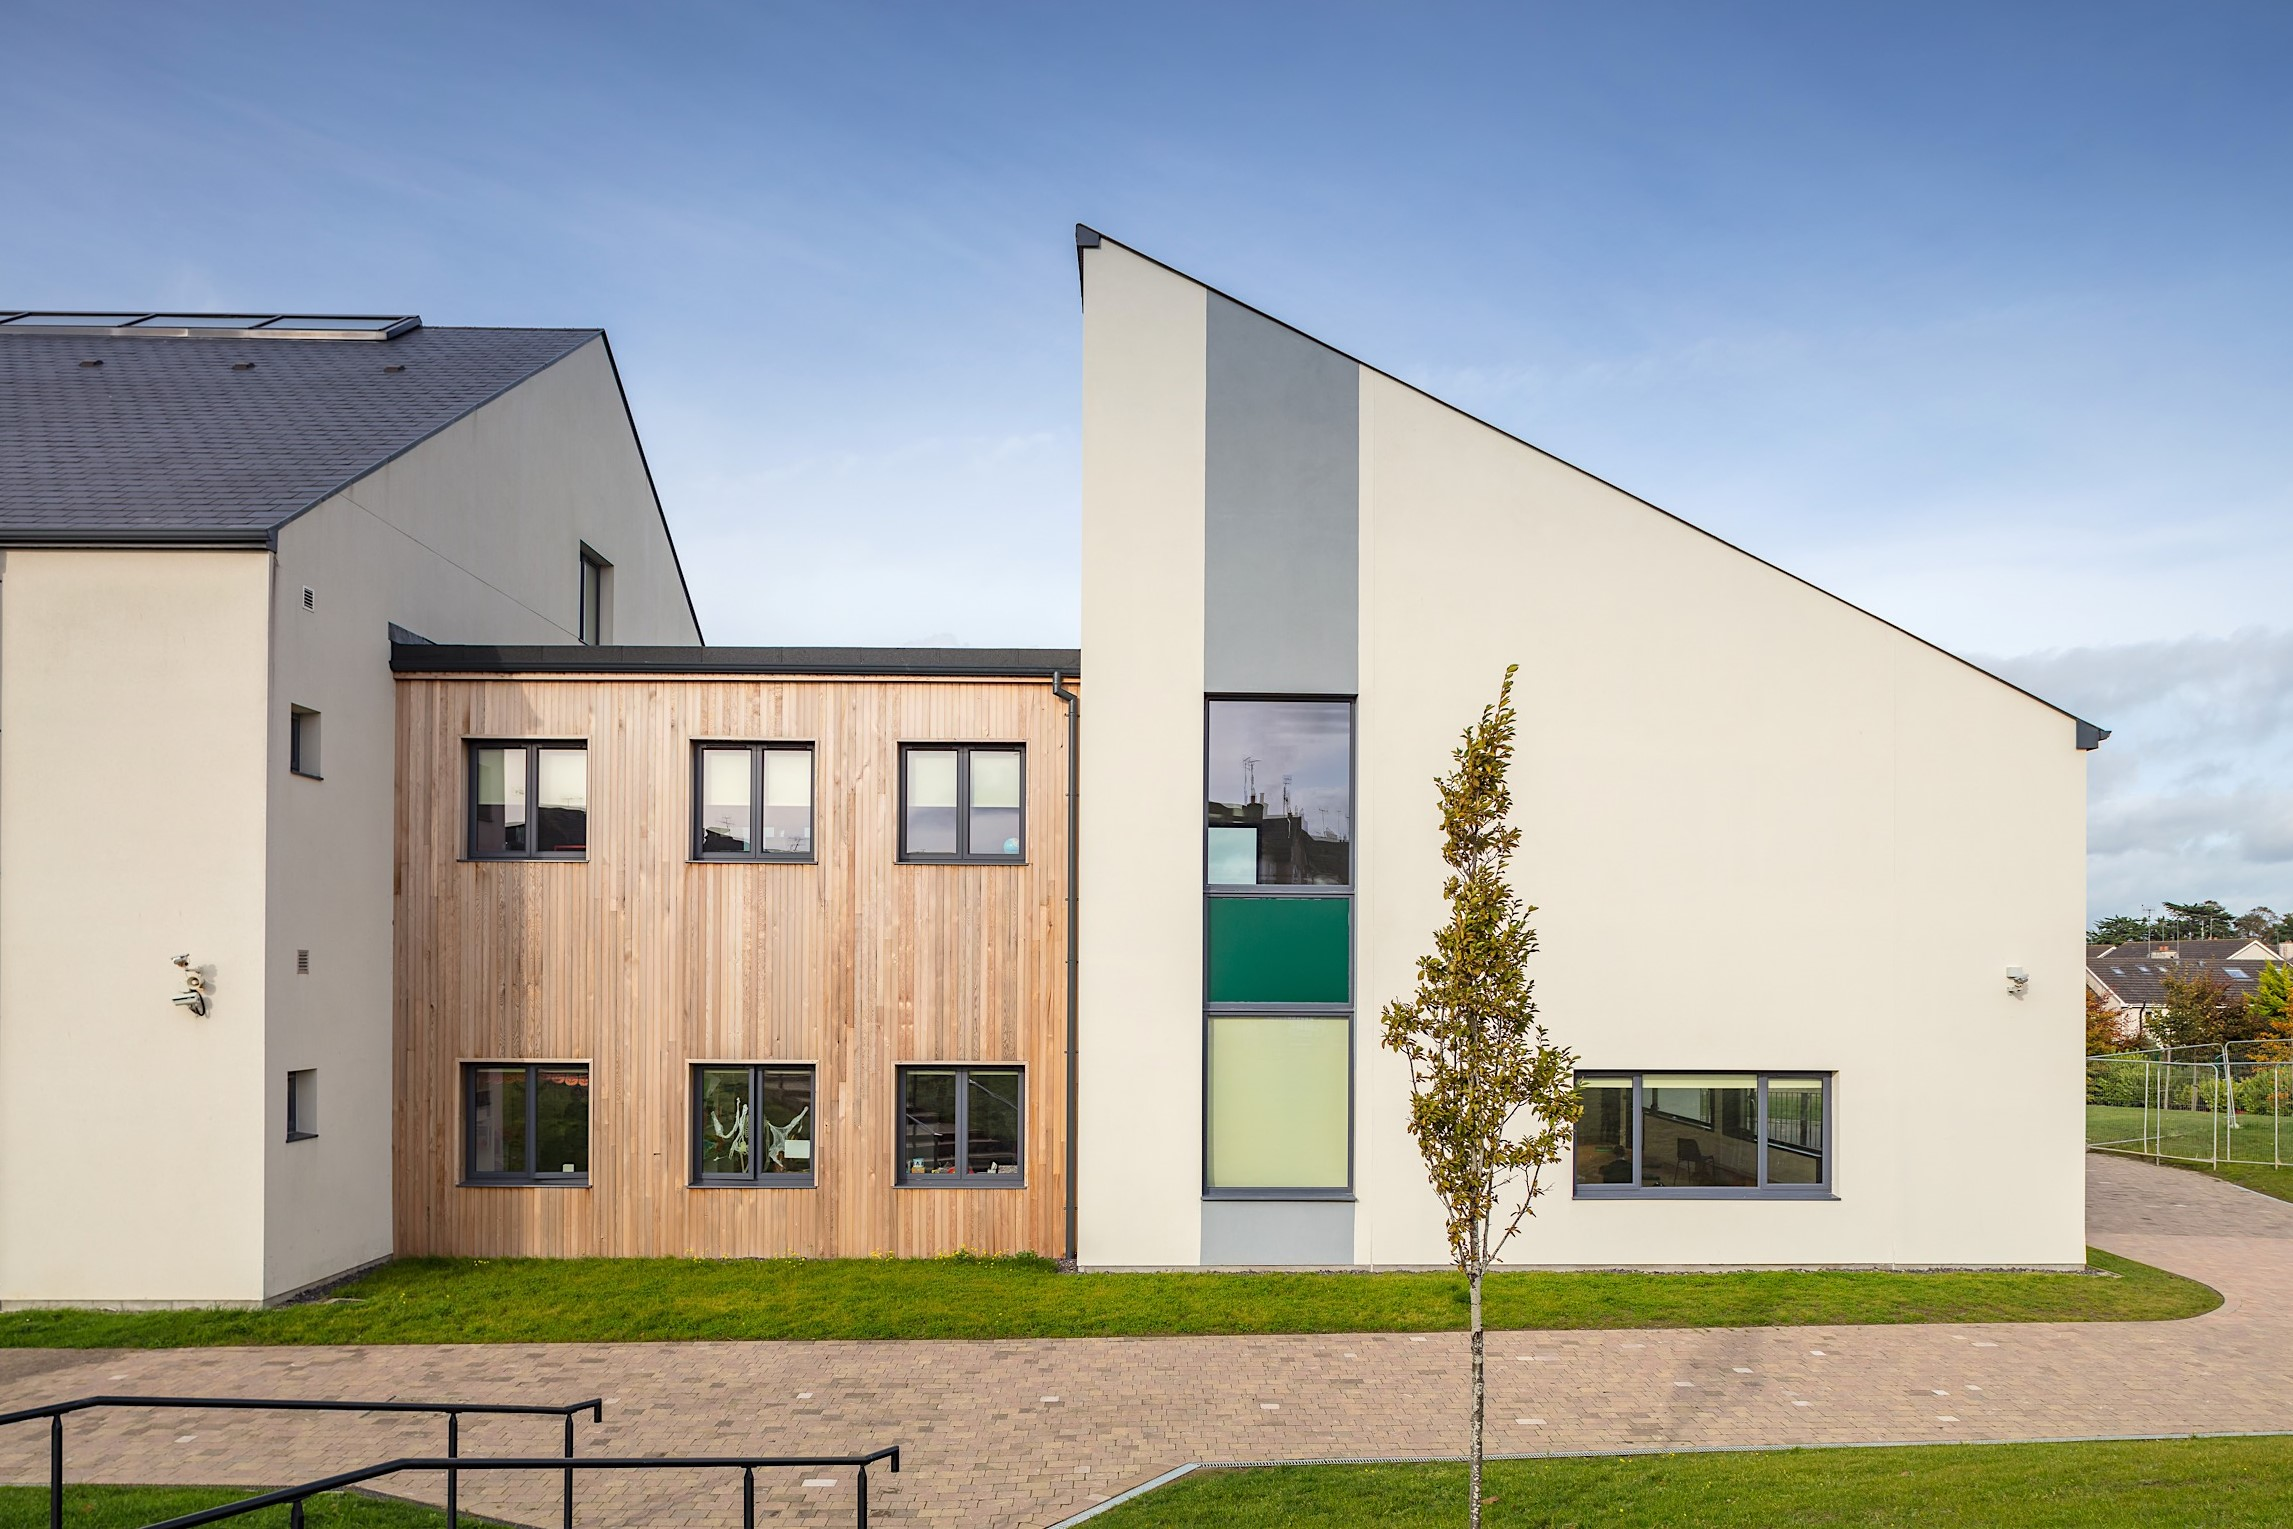 Extension to St. Mary's Parish Primary School complete